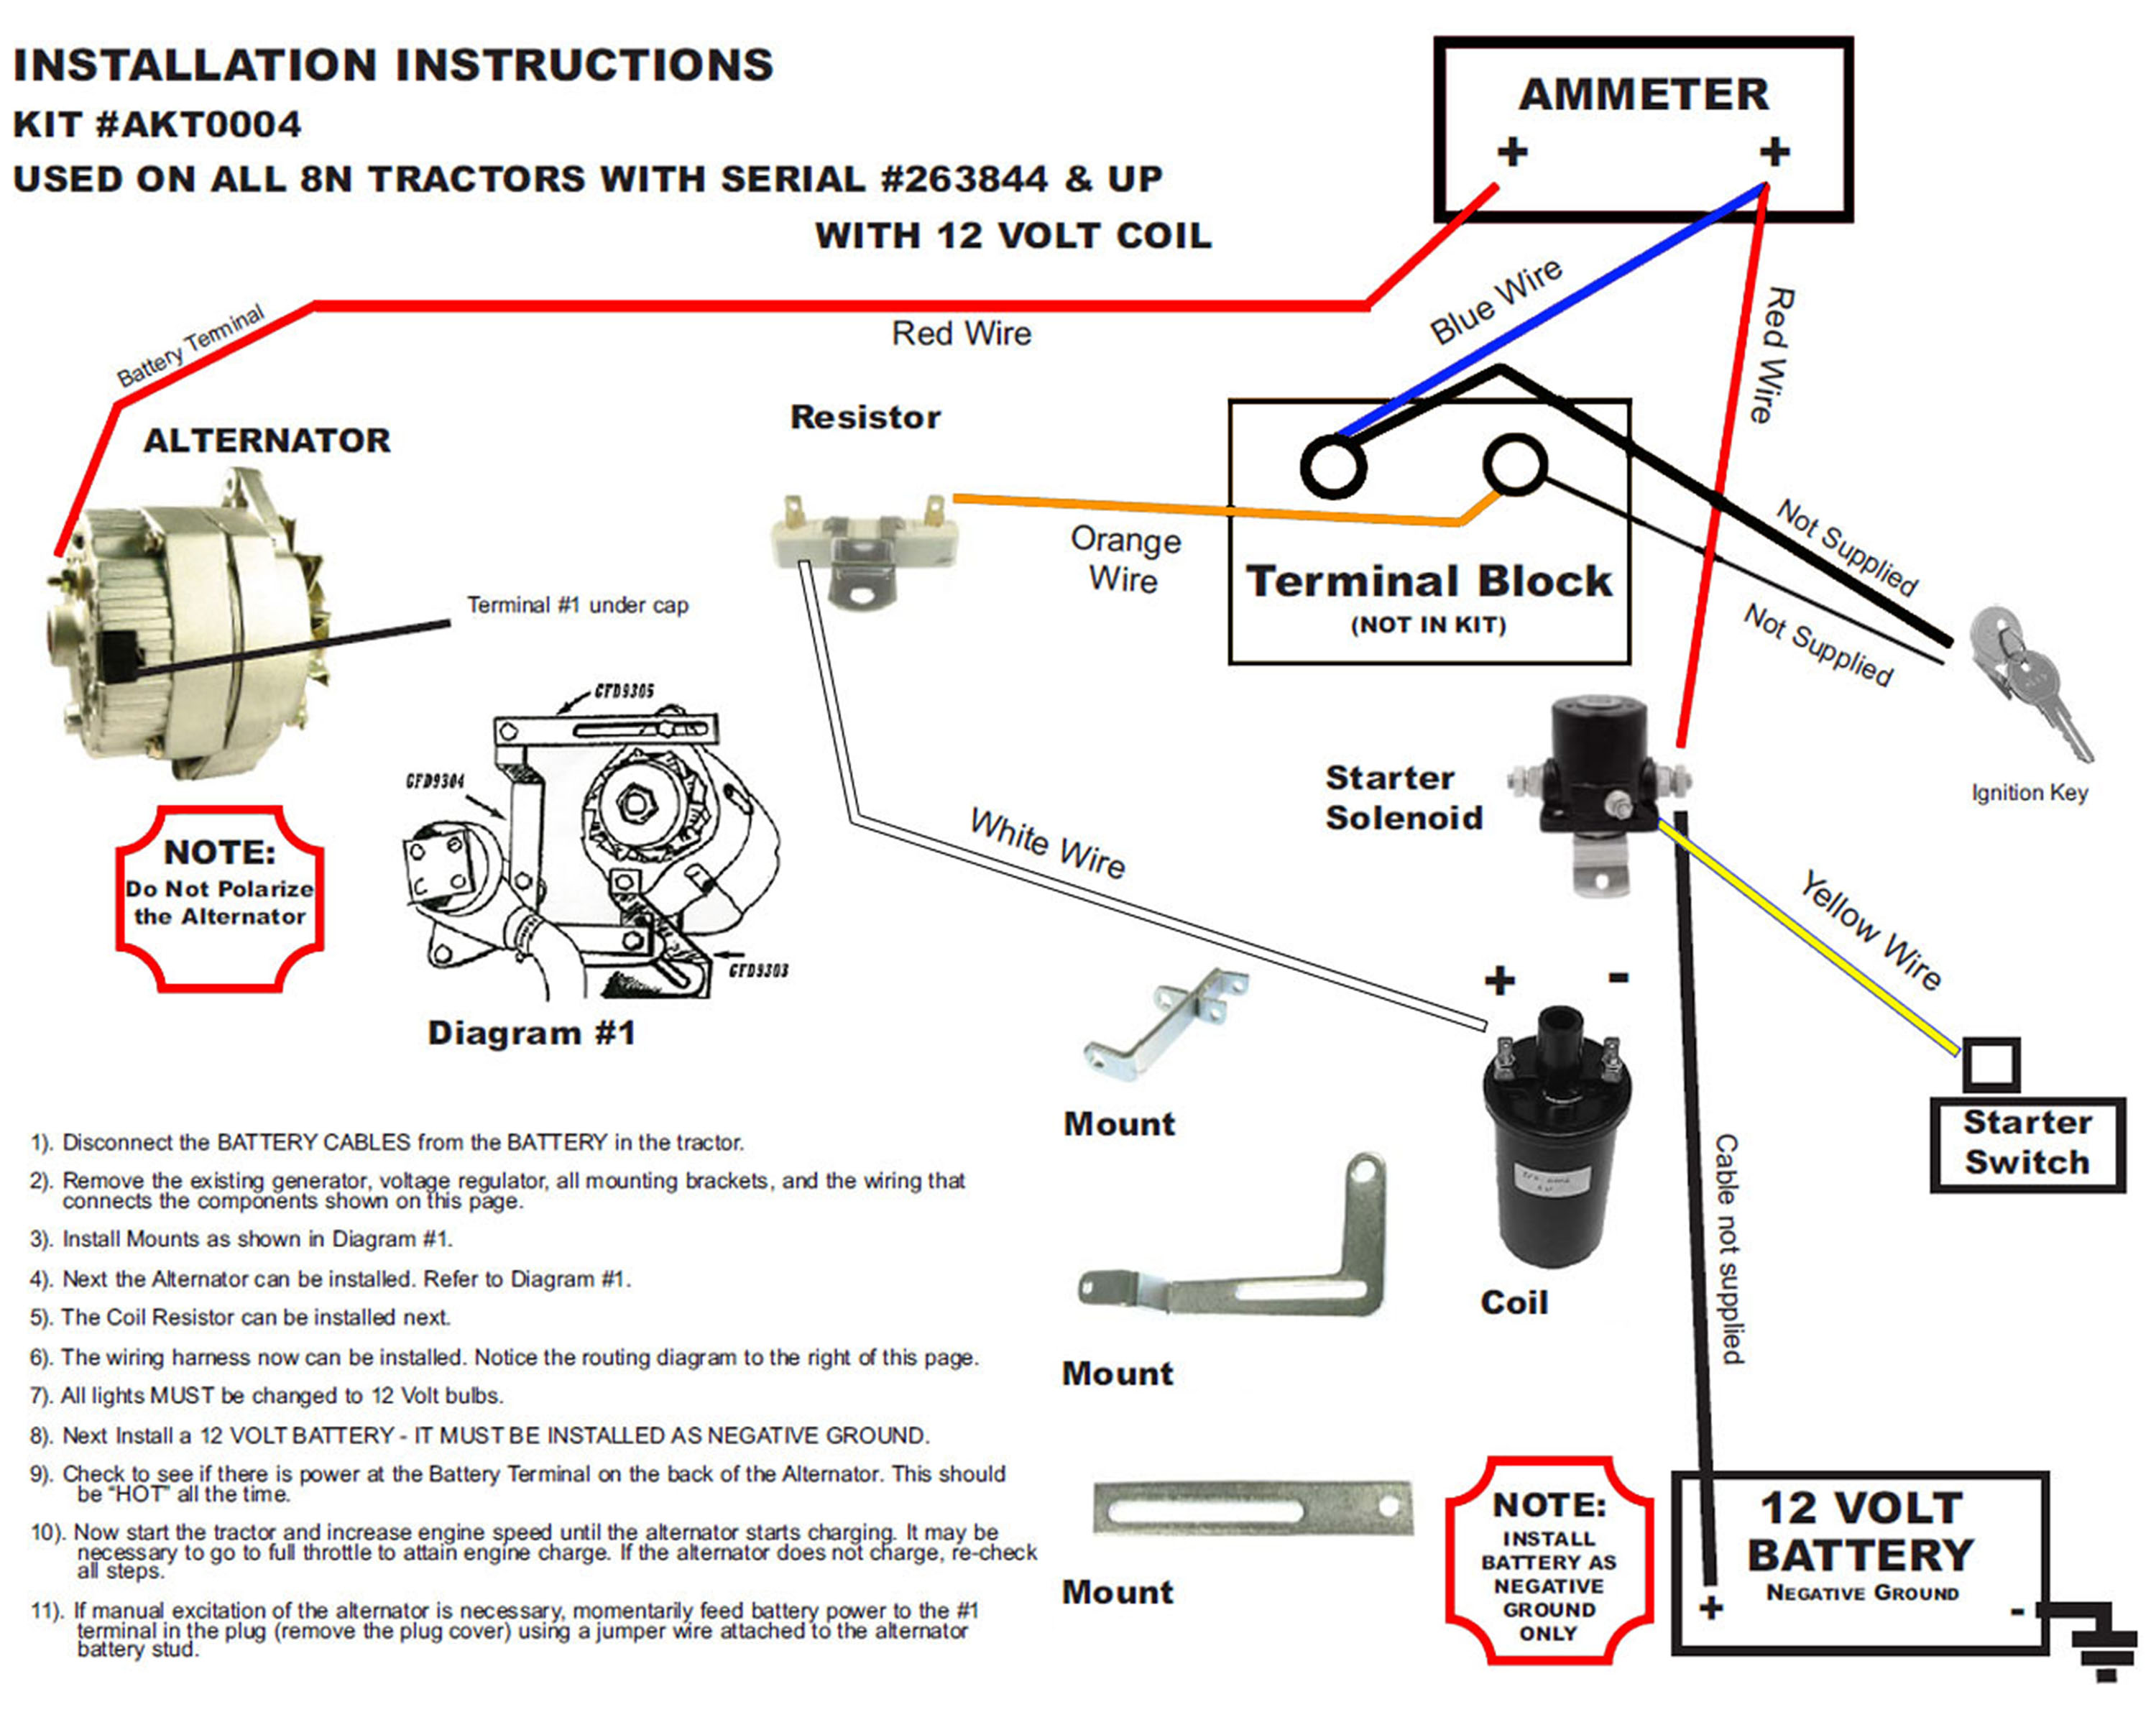 8n Ford 1 Wire Alternator Diagram Wiring Diagrams Schema Chevy 3 Auto Electrical Conversion